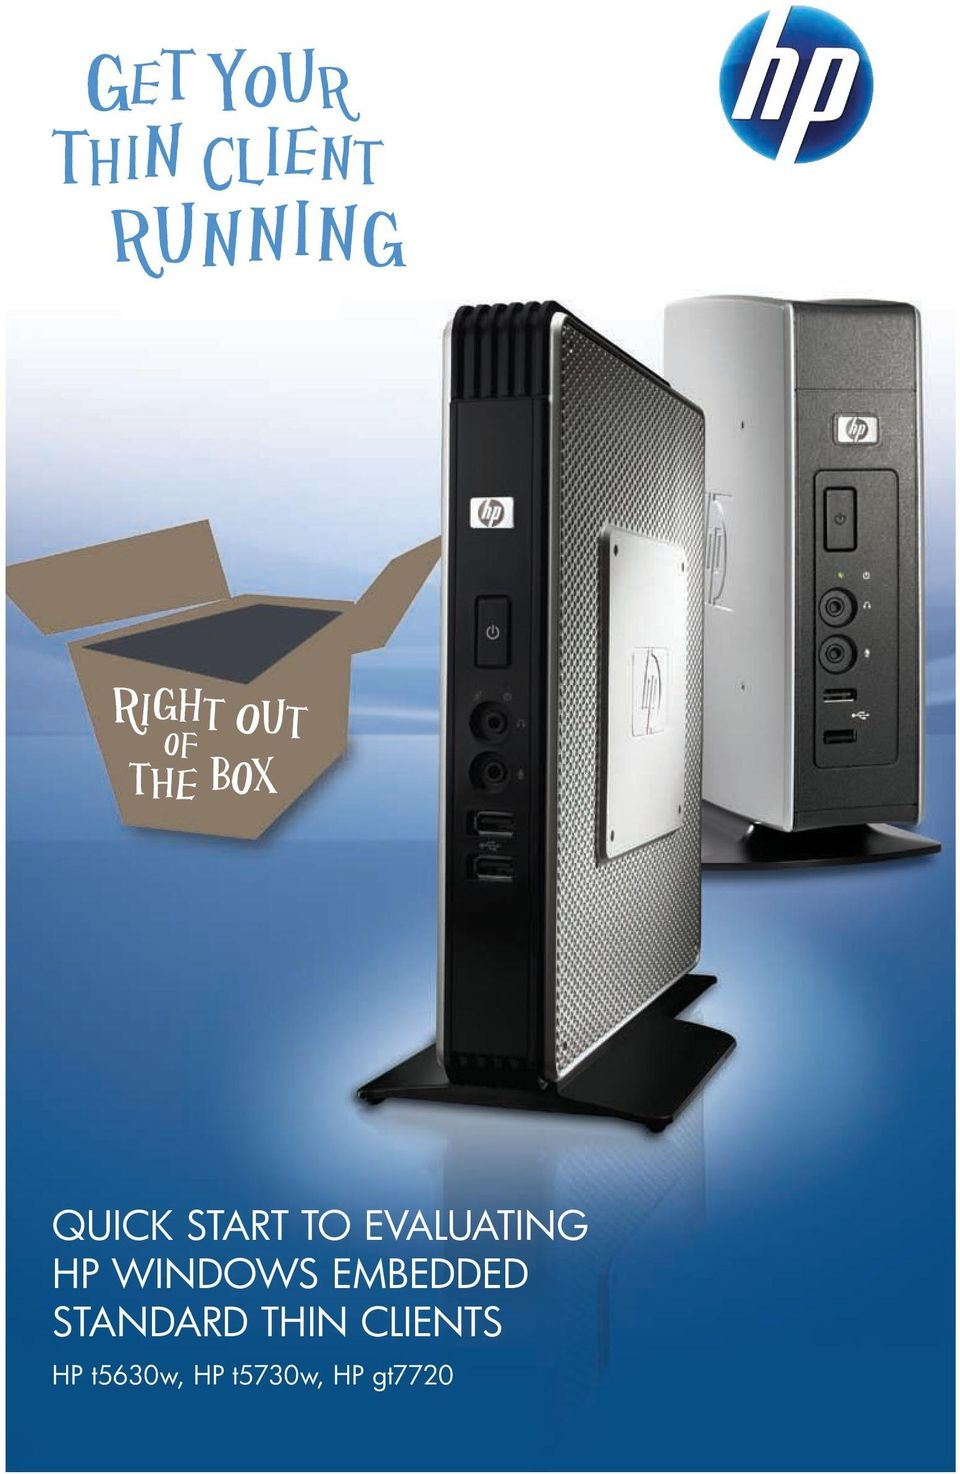 How To Install Window 10 On Hp Compaq T5000 Specs